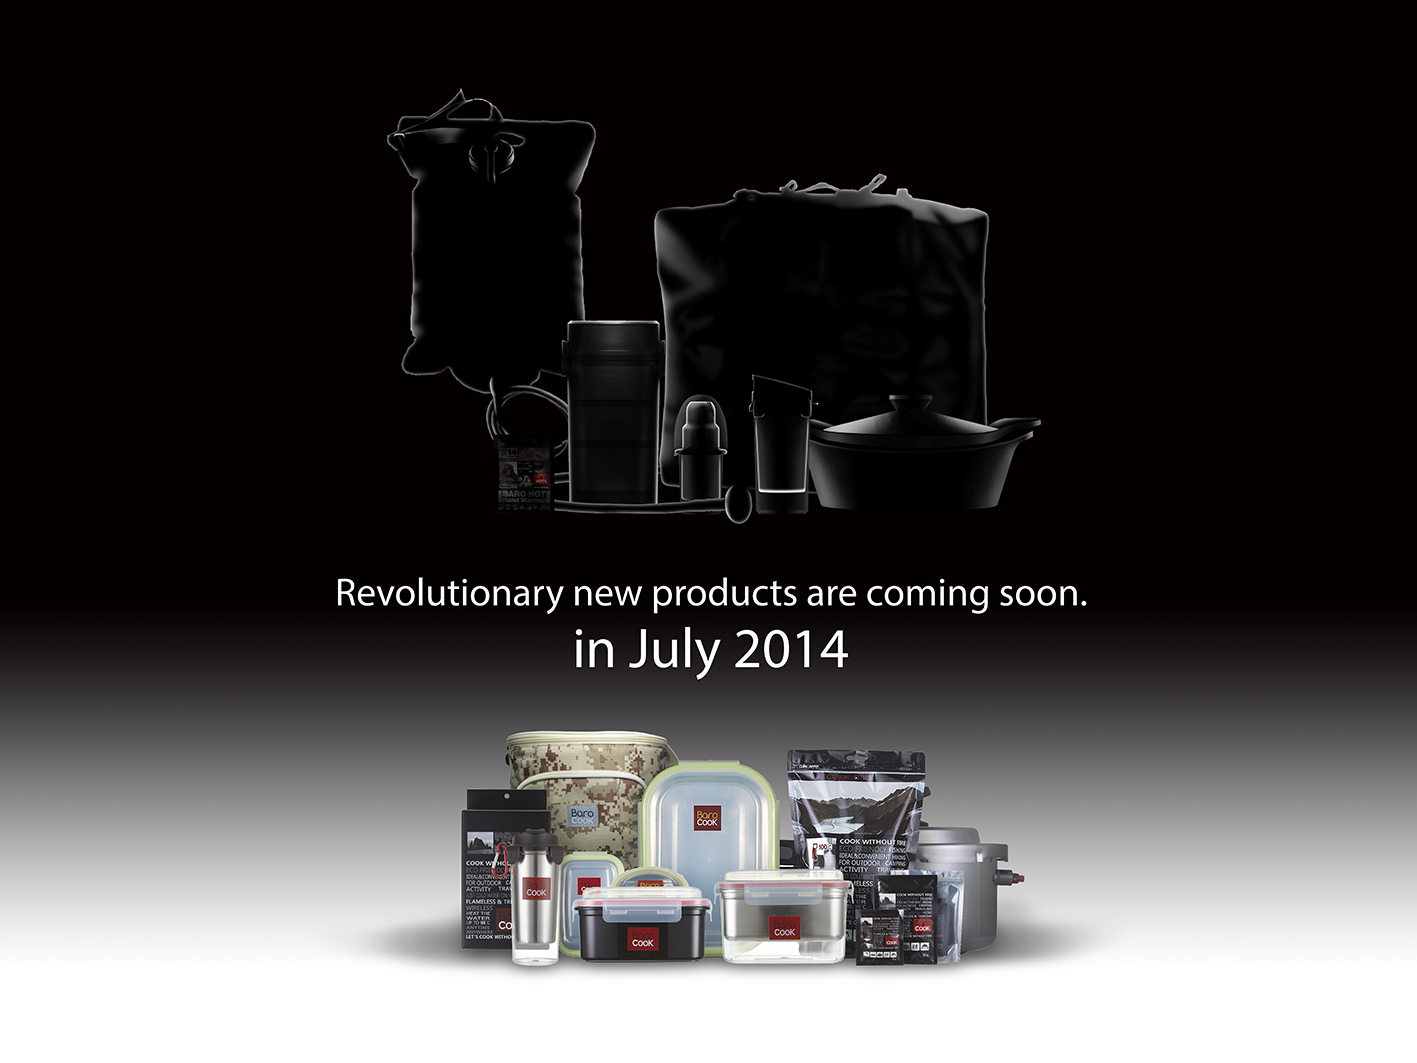 Revolutionary new products are coming soon